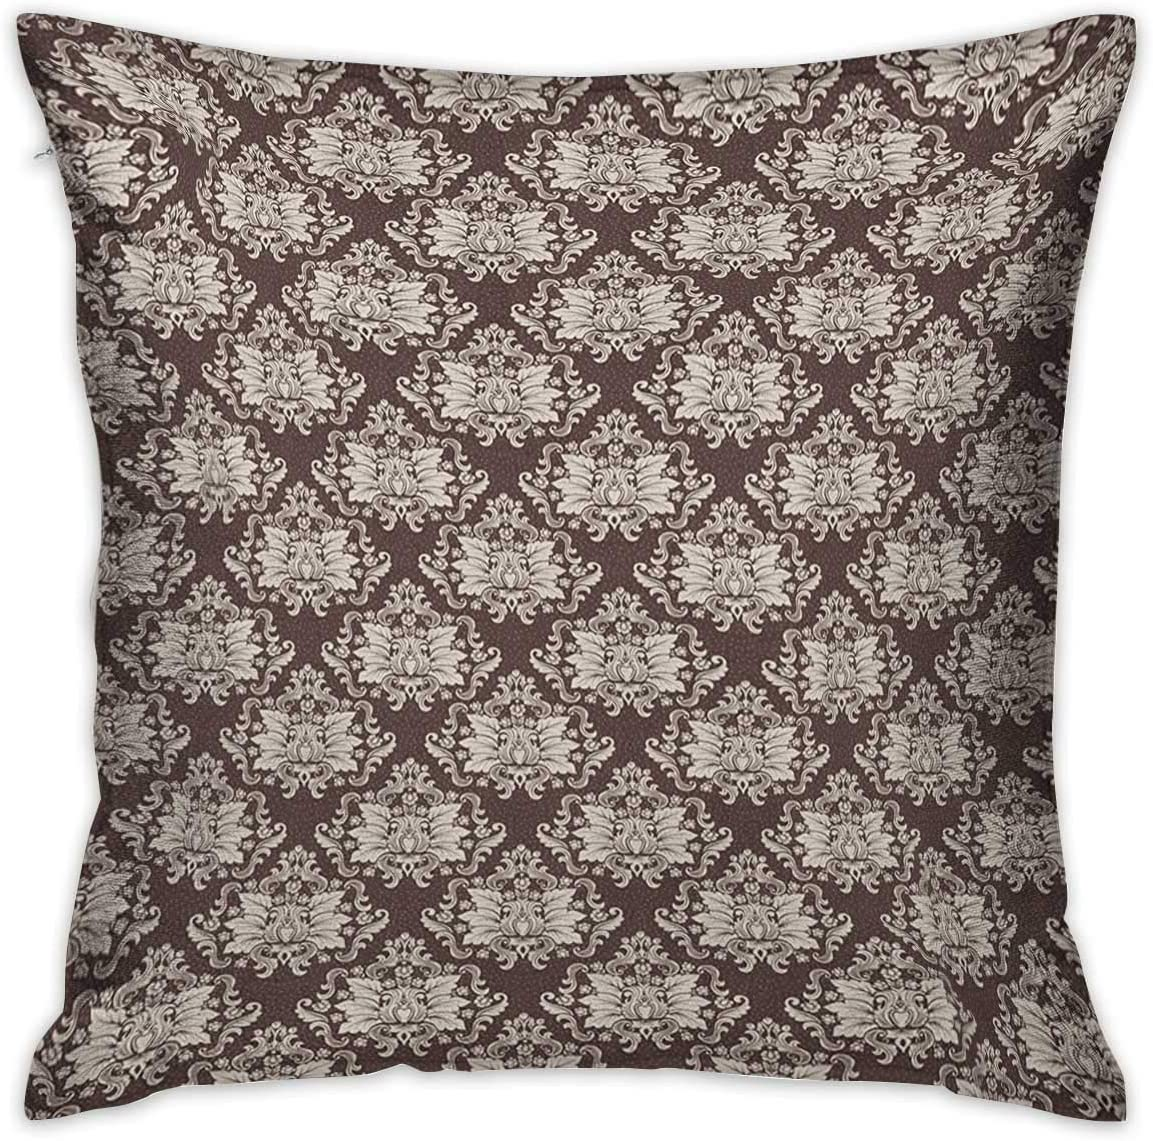 Amazon Com Krystal Magic Dasquare Standard Pillowcase Victorian Floral Pattern With Blooming Foliage Leaves On Dark Toned Backdrop Brown And Beige Cushion Cases Pillowcases For Sofa Bedroom Car Home Kitchen